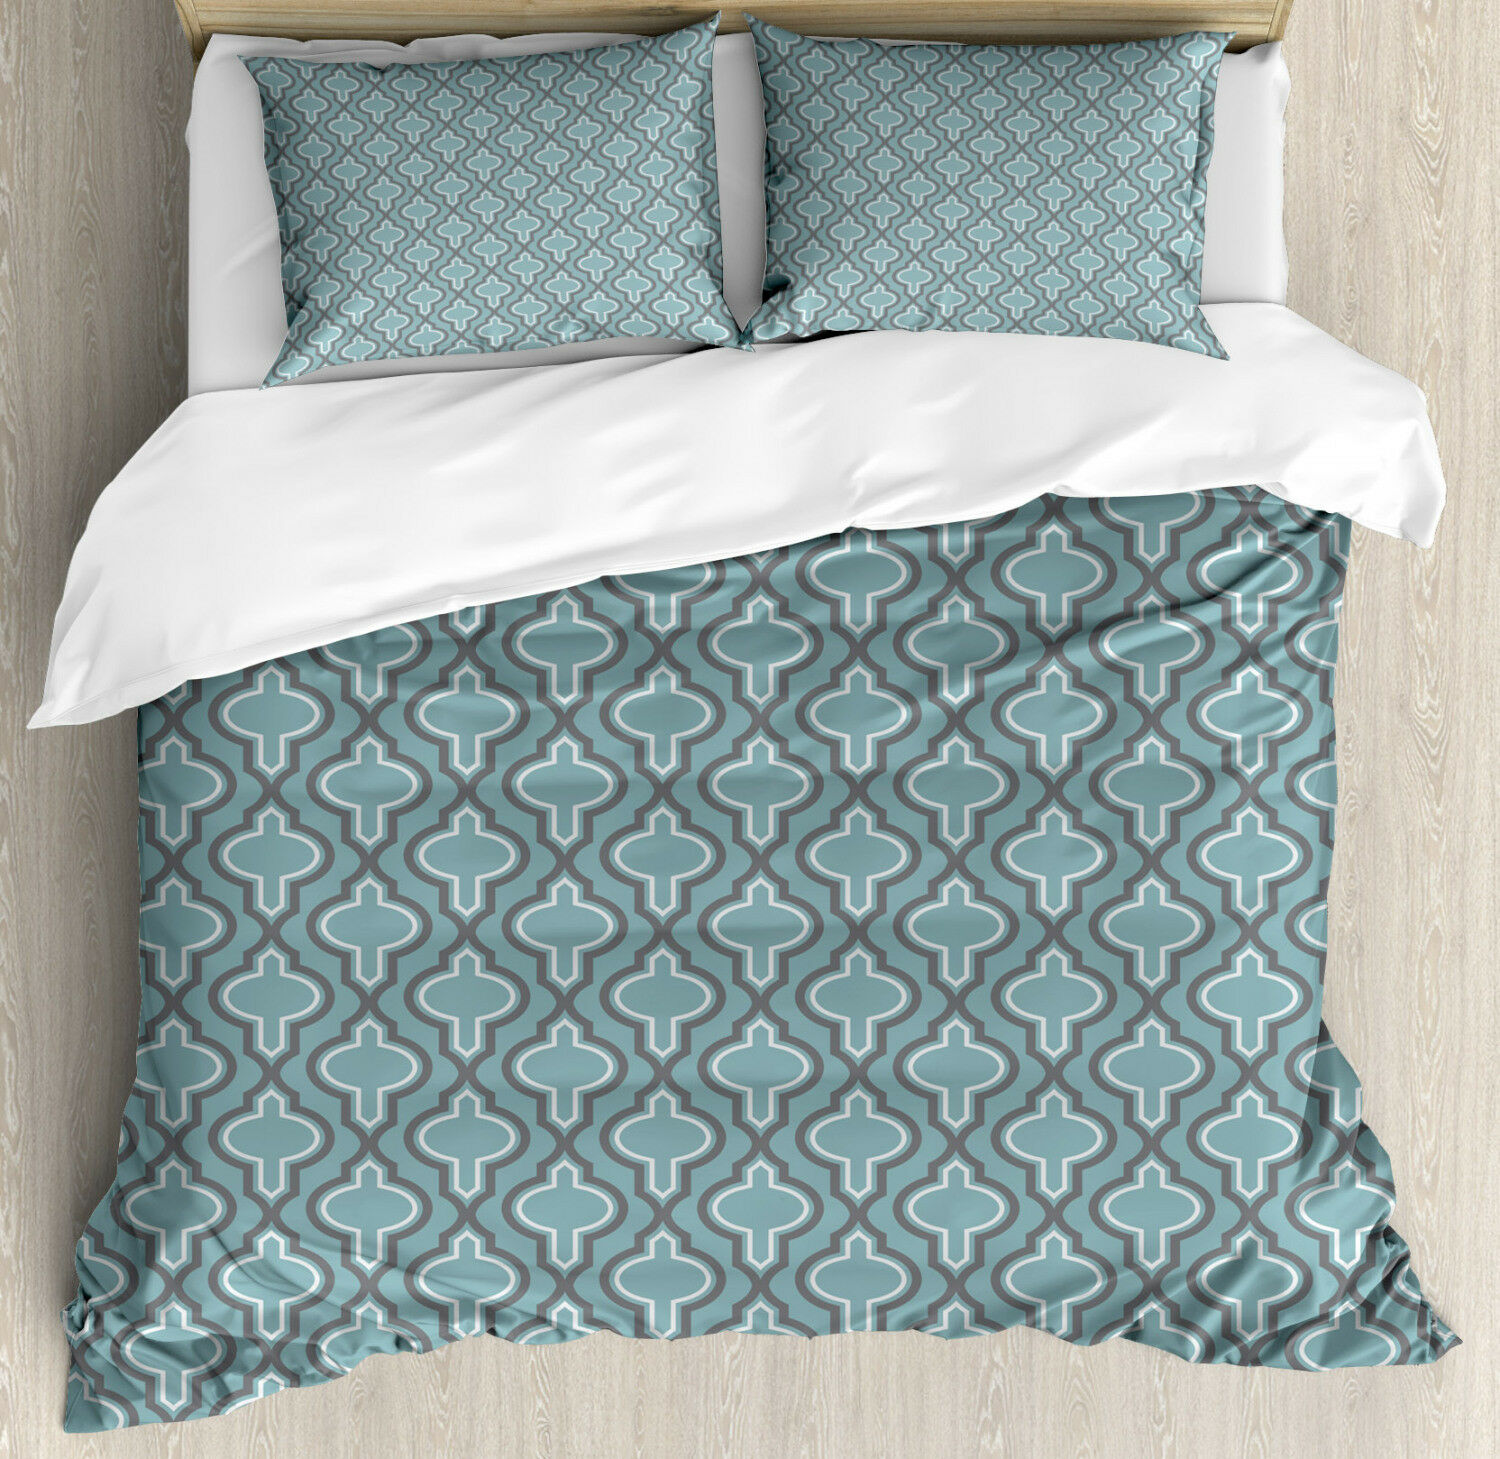 Turquoise Duvet Cover Set with Pillow Shams Ethnic Shapes Rounds Print